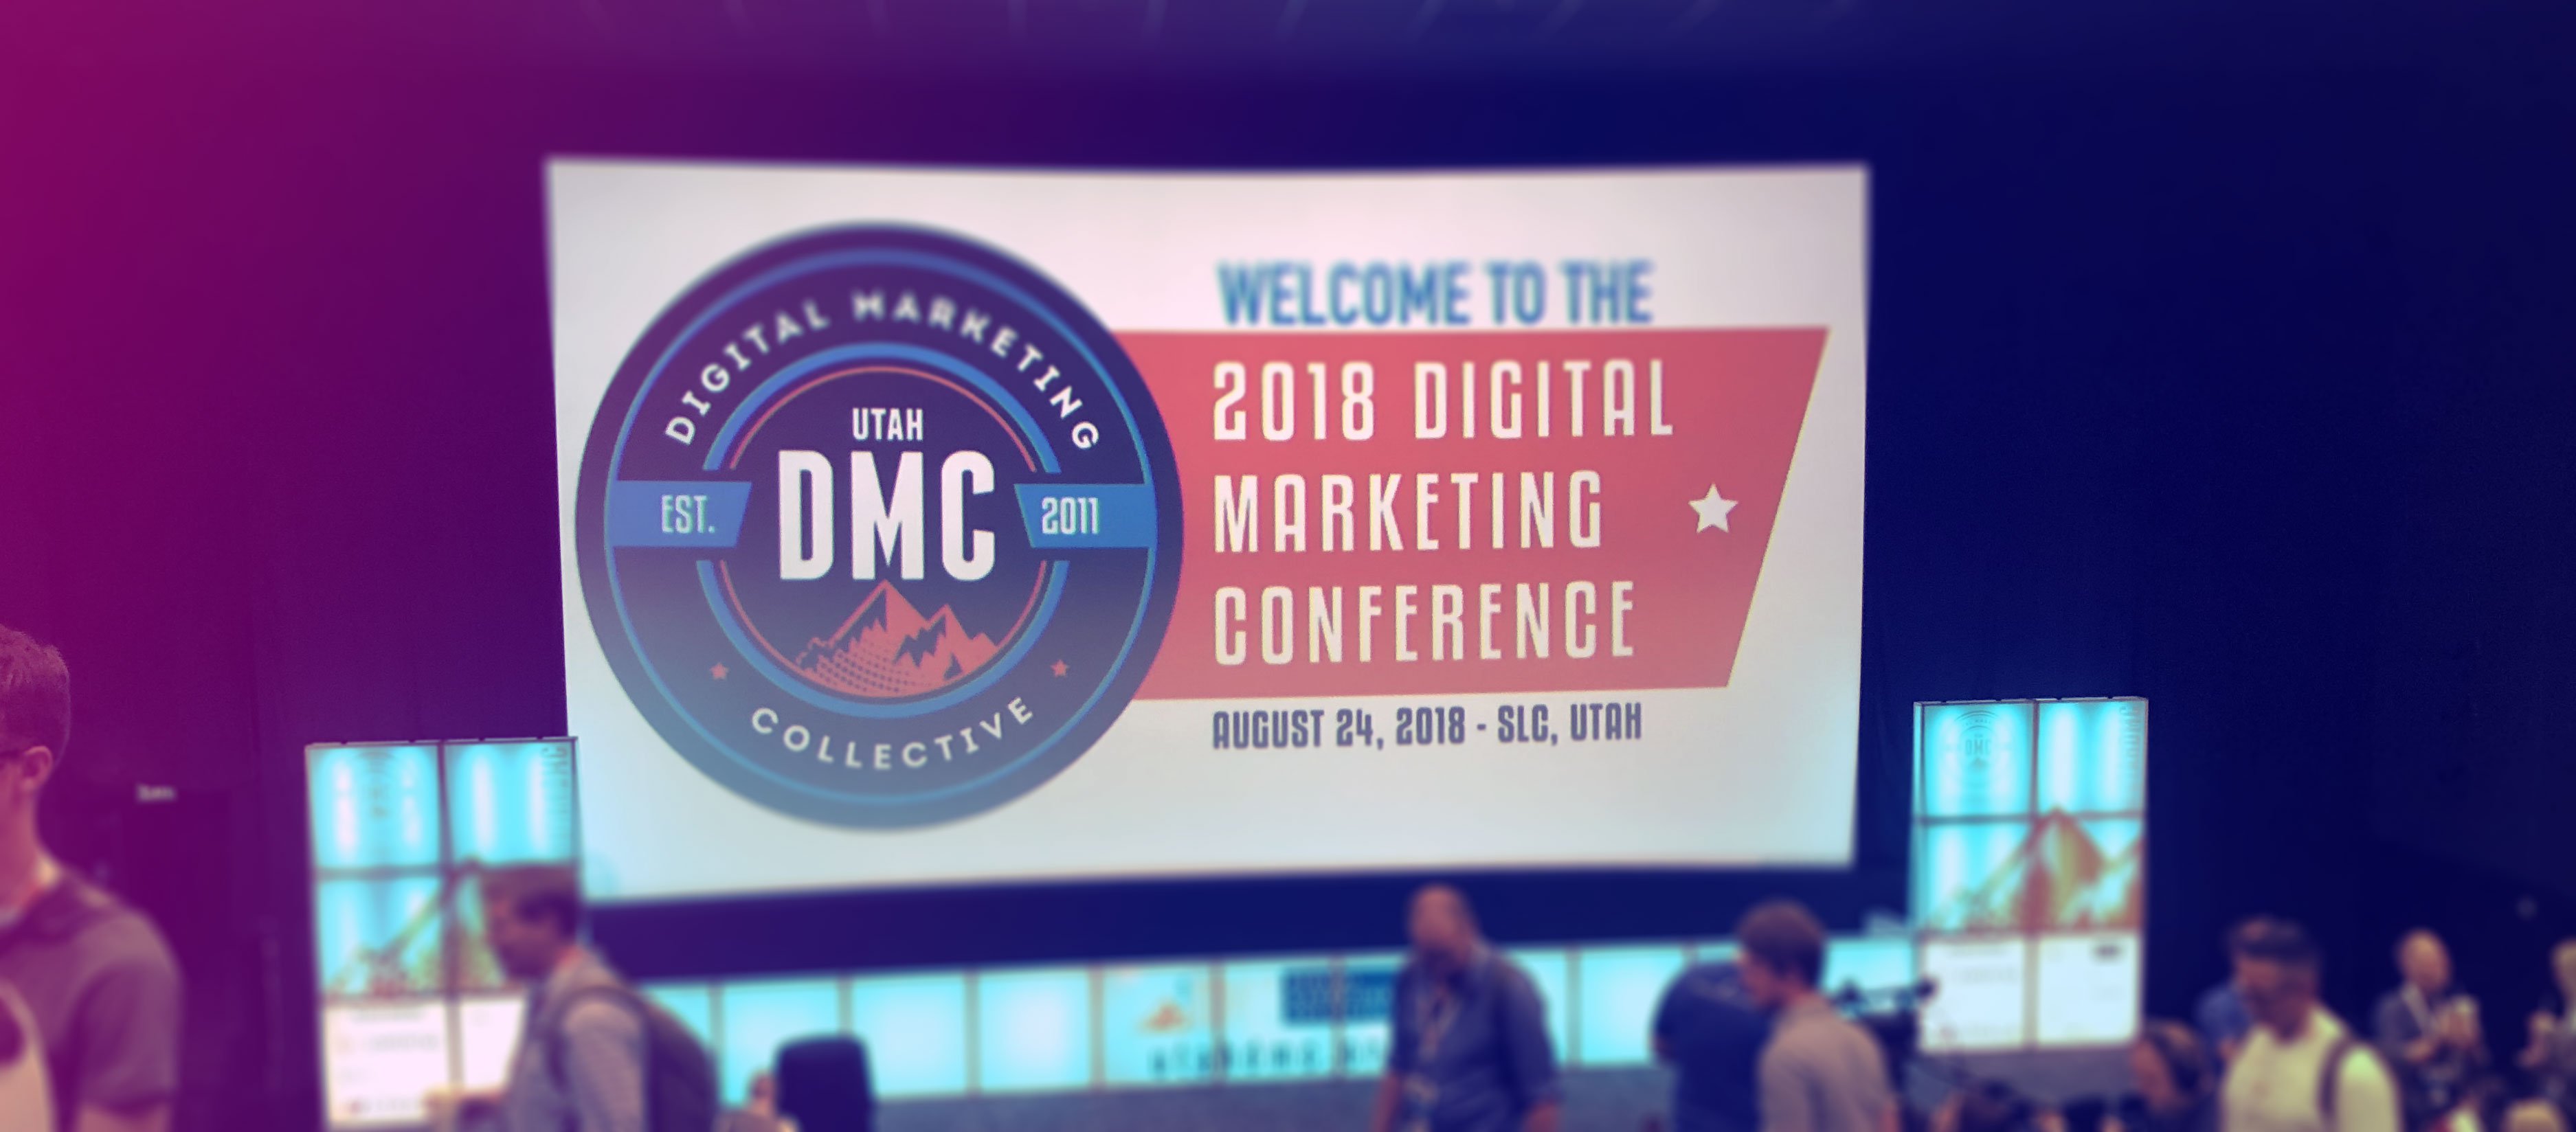 Sign welcoming attendees to the 2018 Digital Marketing Conference hosted by the Utah Digital Marketing Collective.